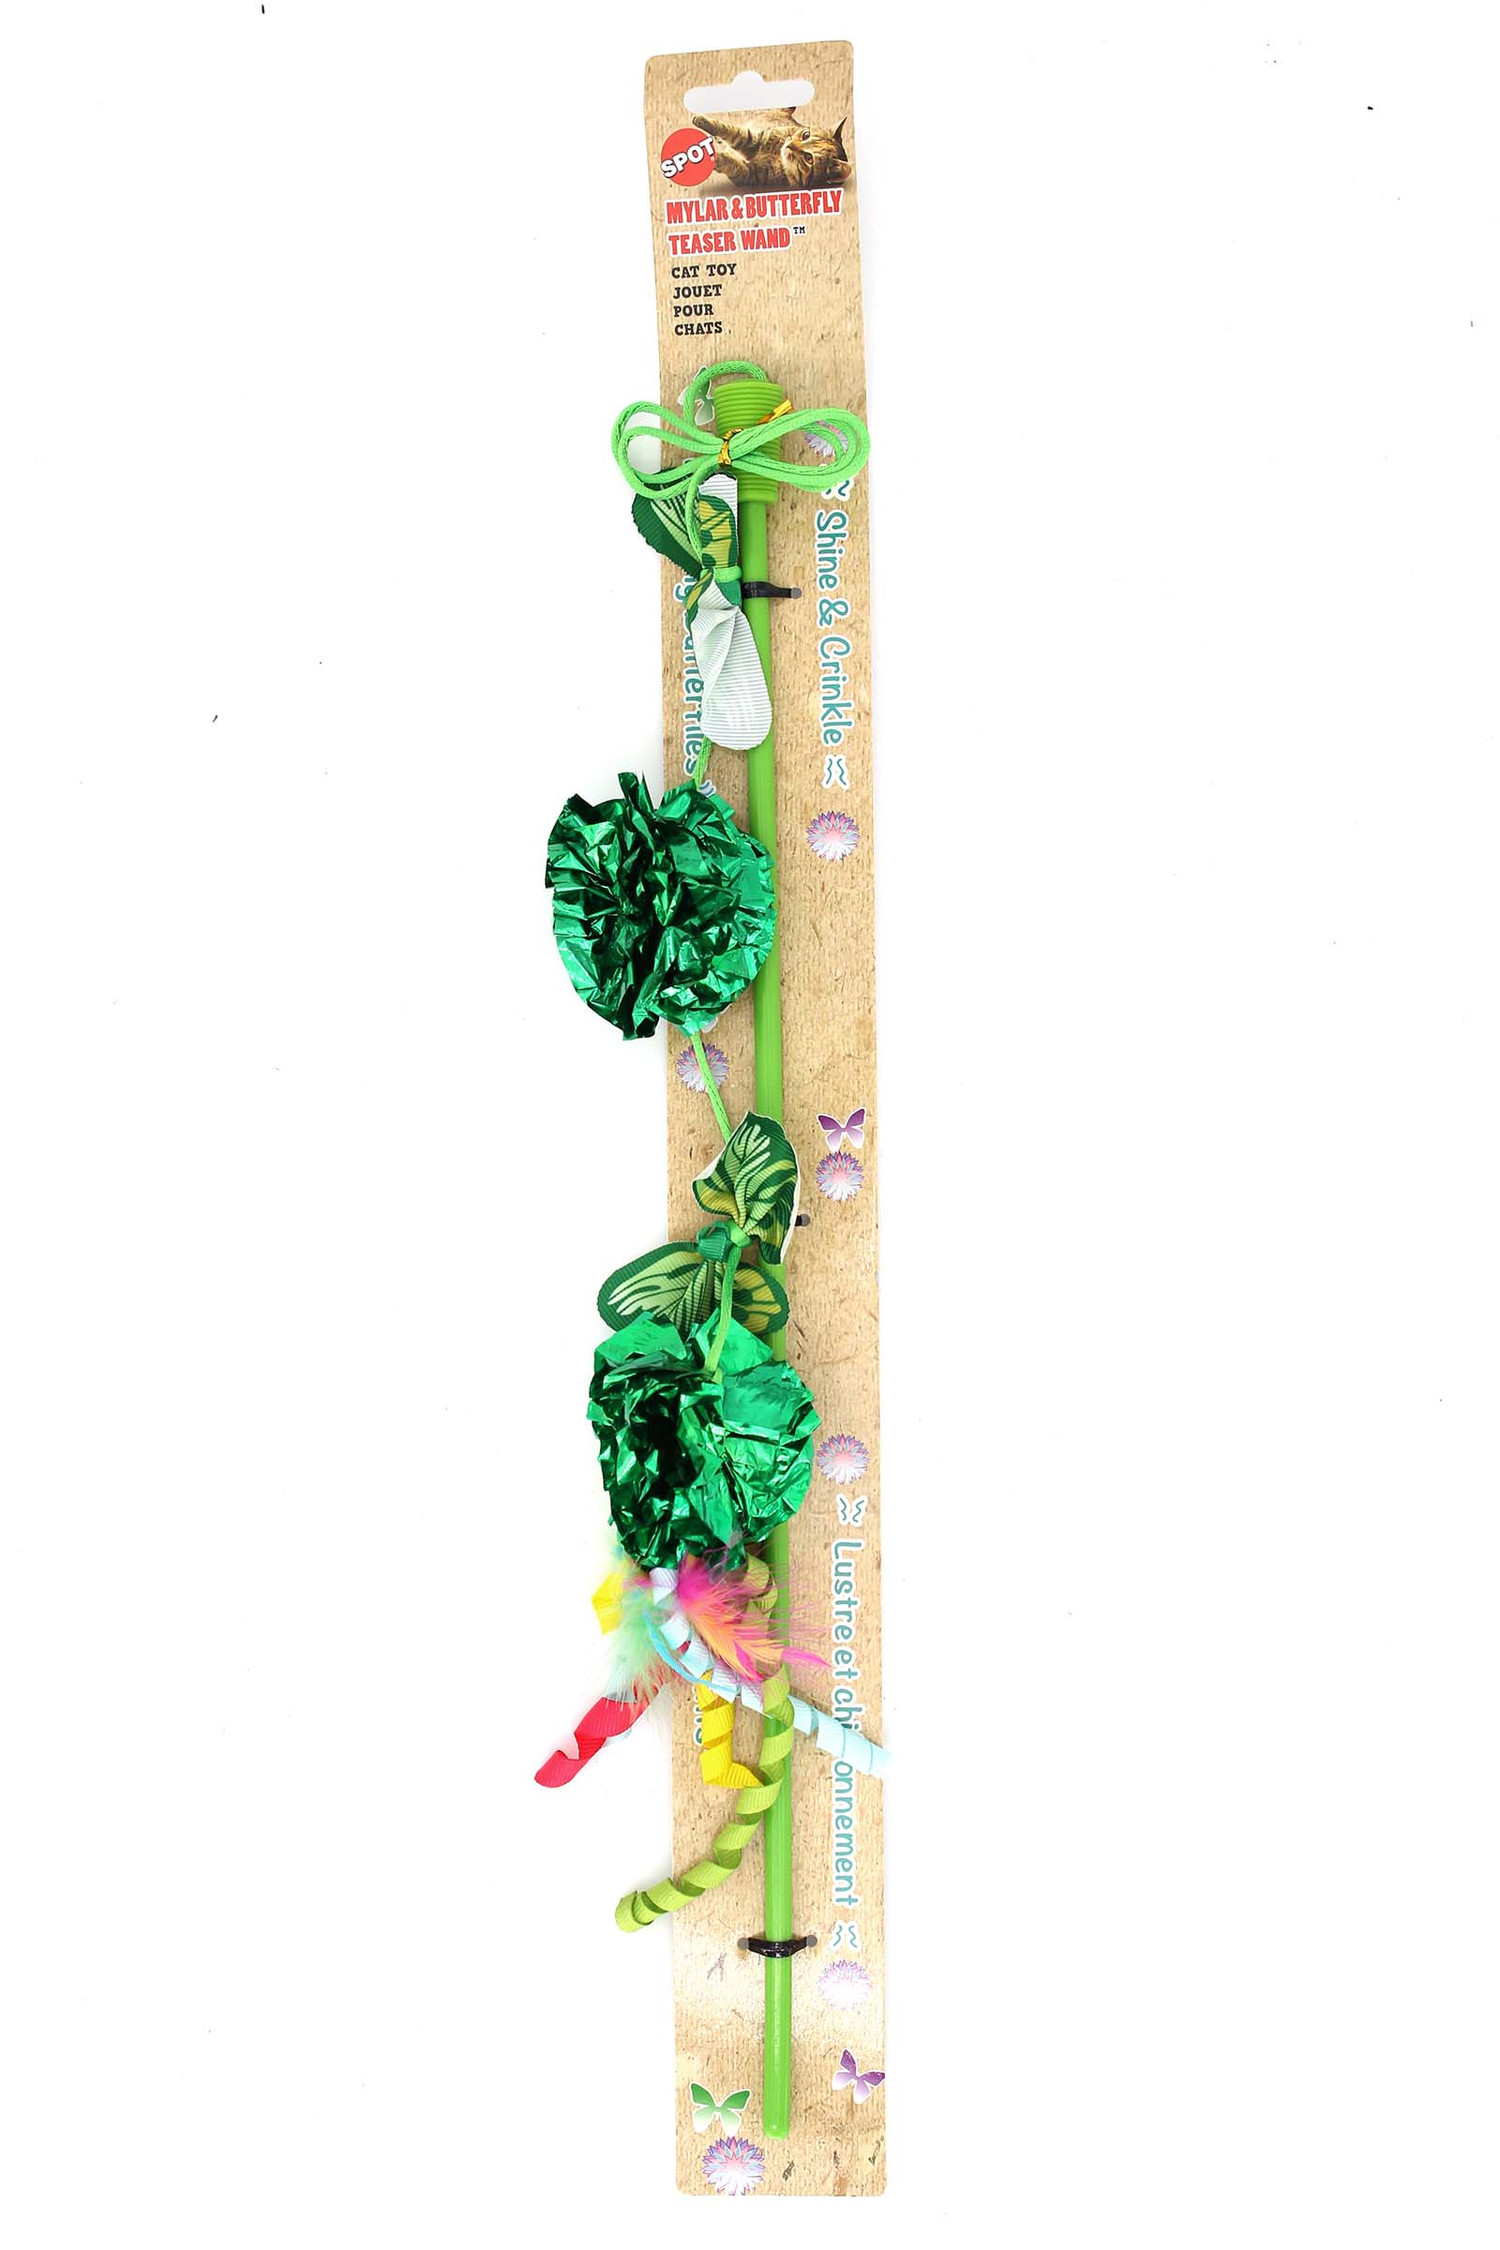 Spot Butterfly and Crinkle Ball Teaser Wand Cat Toy